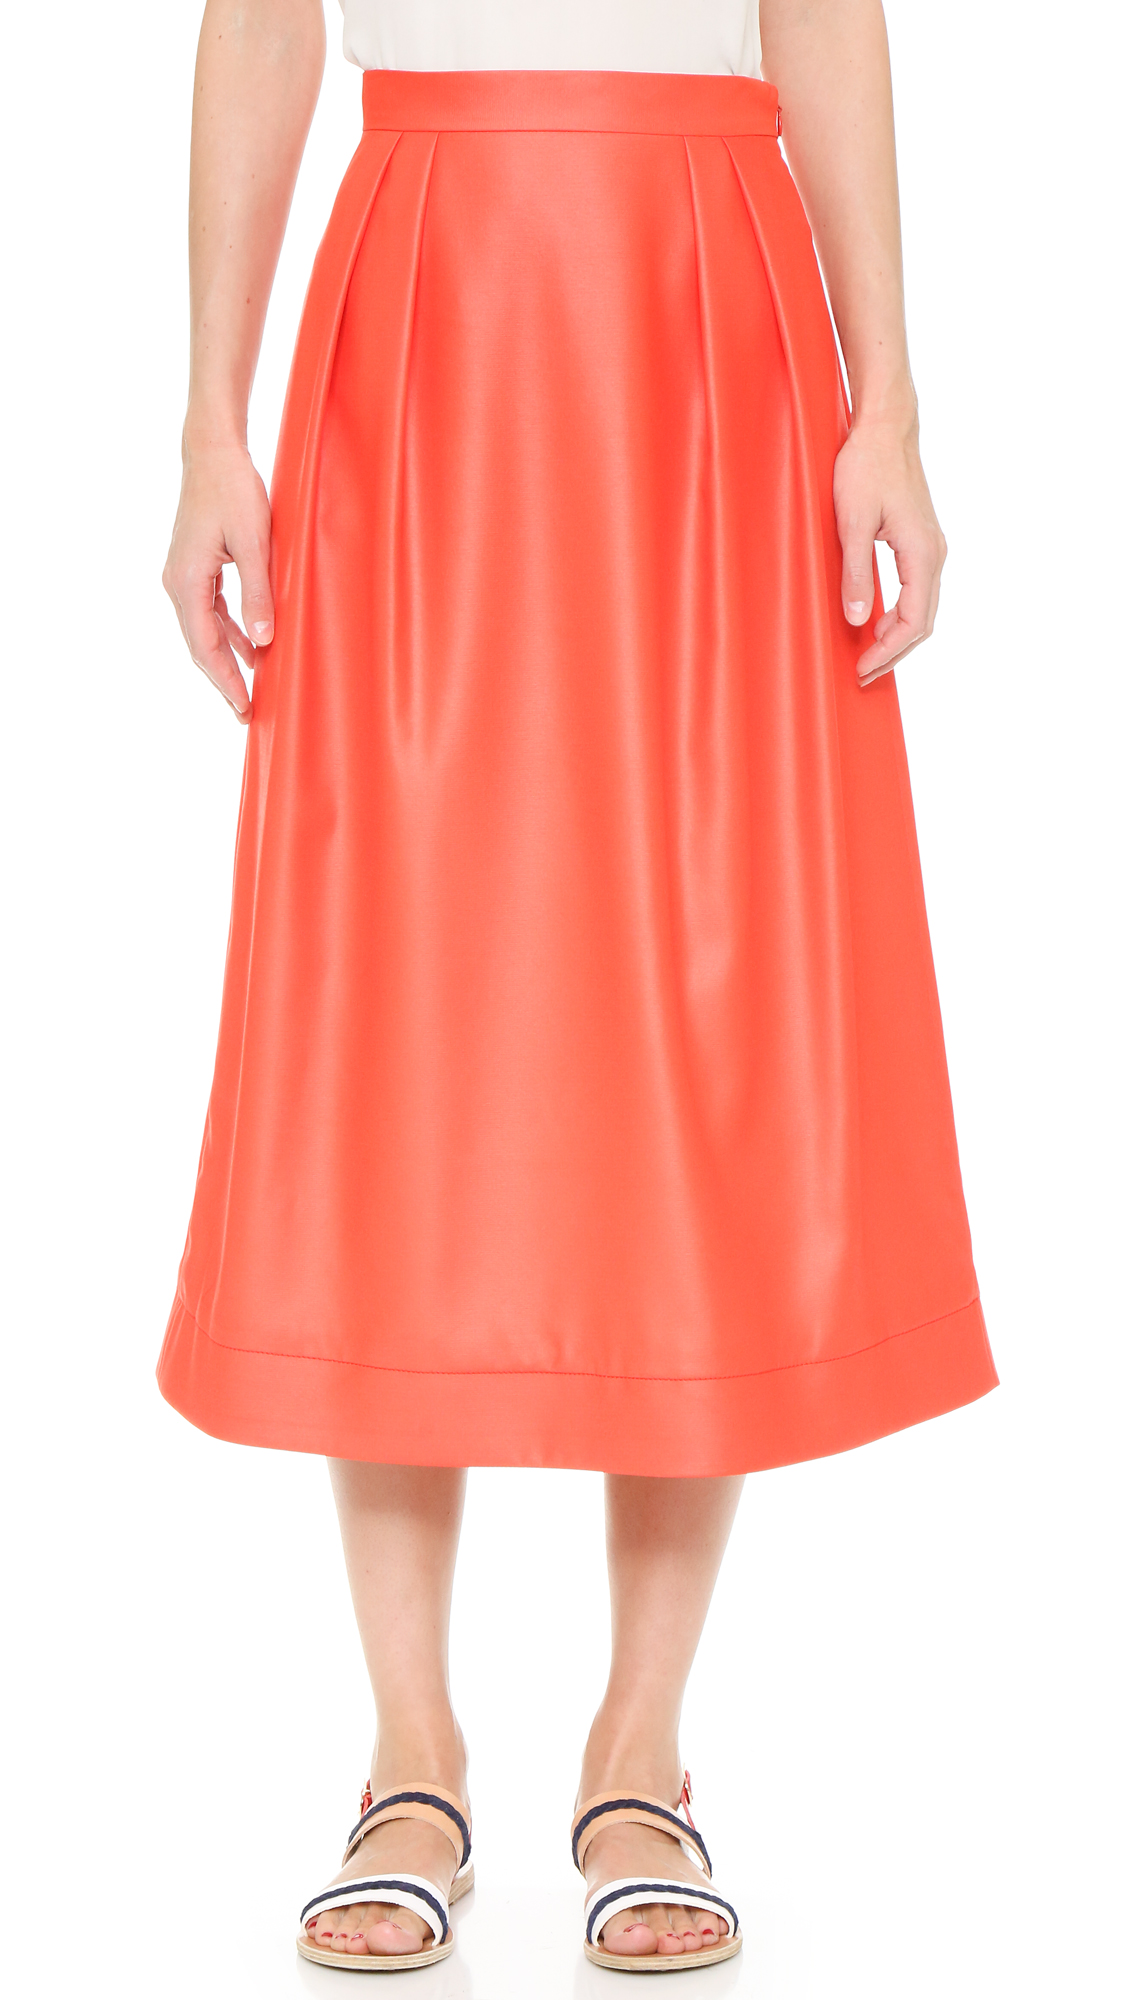 Pleating brings gentle volume to this CG skirt, rendered in a ladylike midi length. Hidden side zip. Silk lining. Fabric: Mid weight weave. Shell: 100% polyester. Lining: 100% silk. Dry clean. Made in the USA. Measurements Length: 32.25in / 82